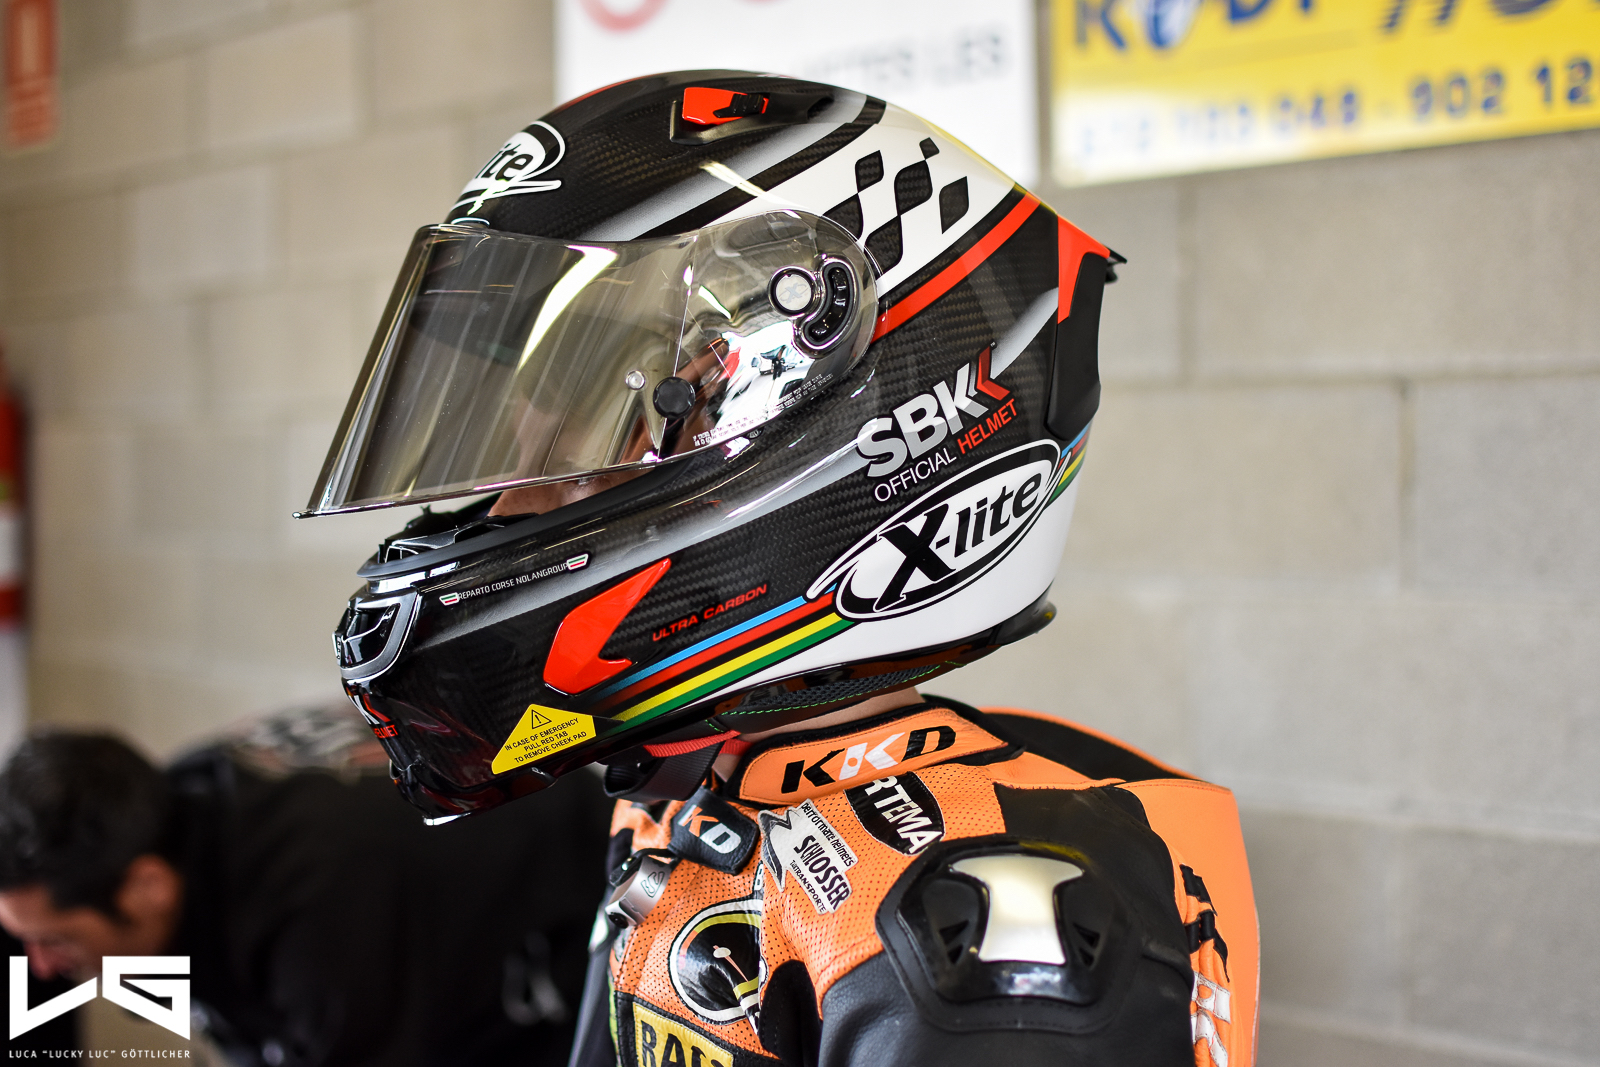 KKD Motorcycle Wear Luca Göttlicher 3